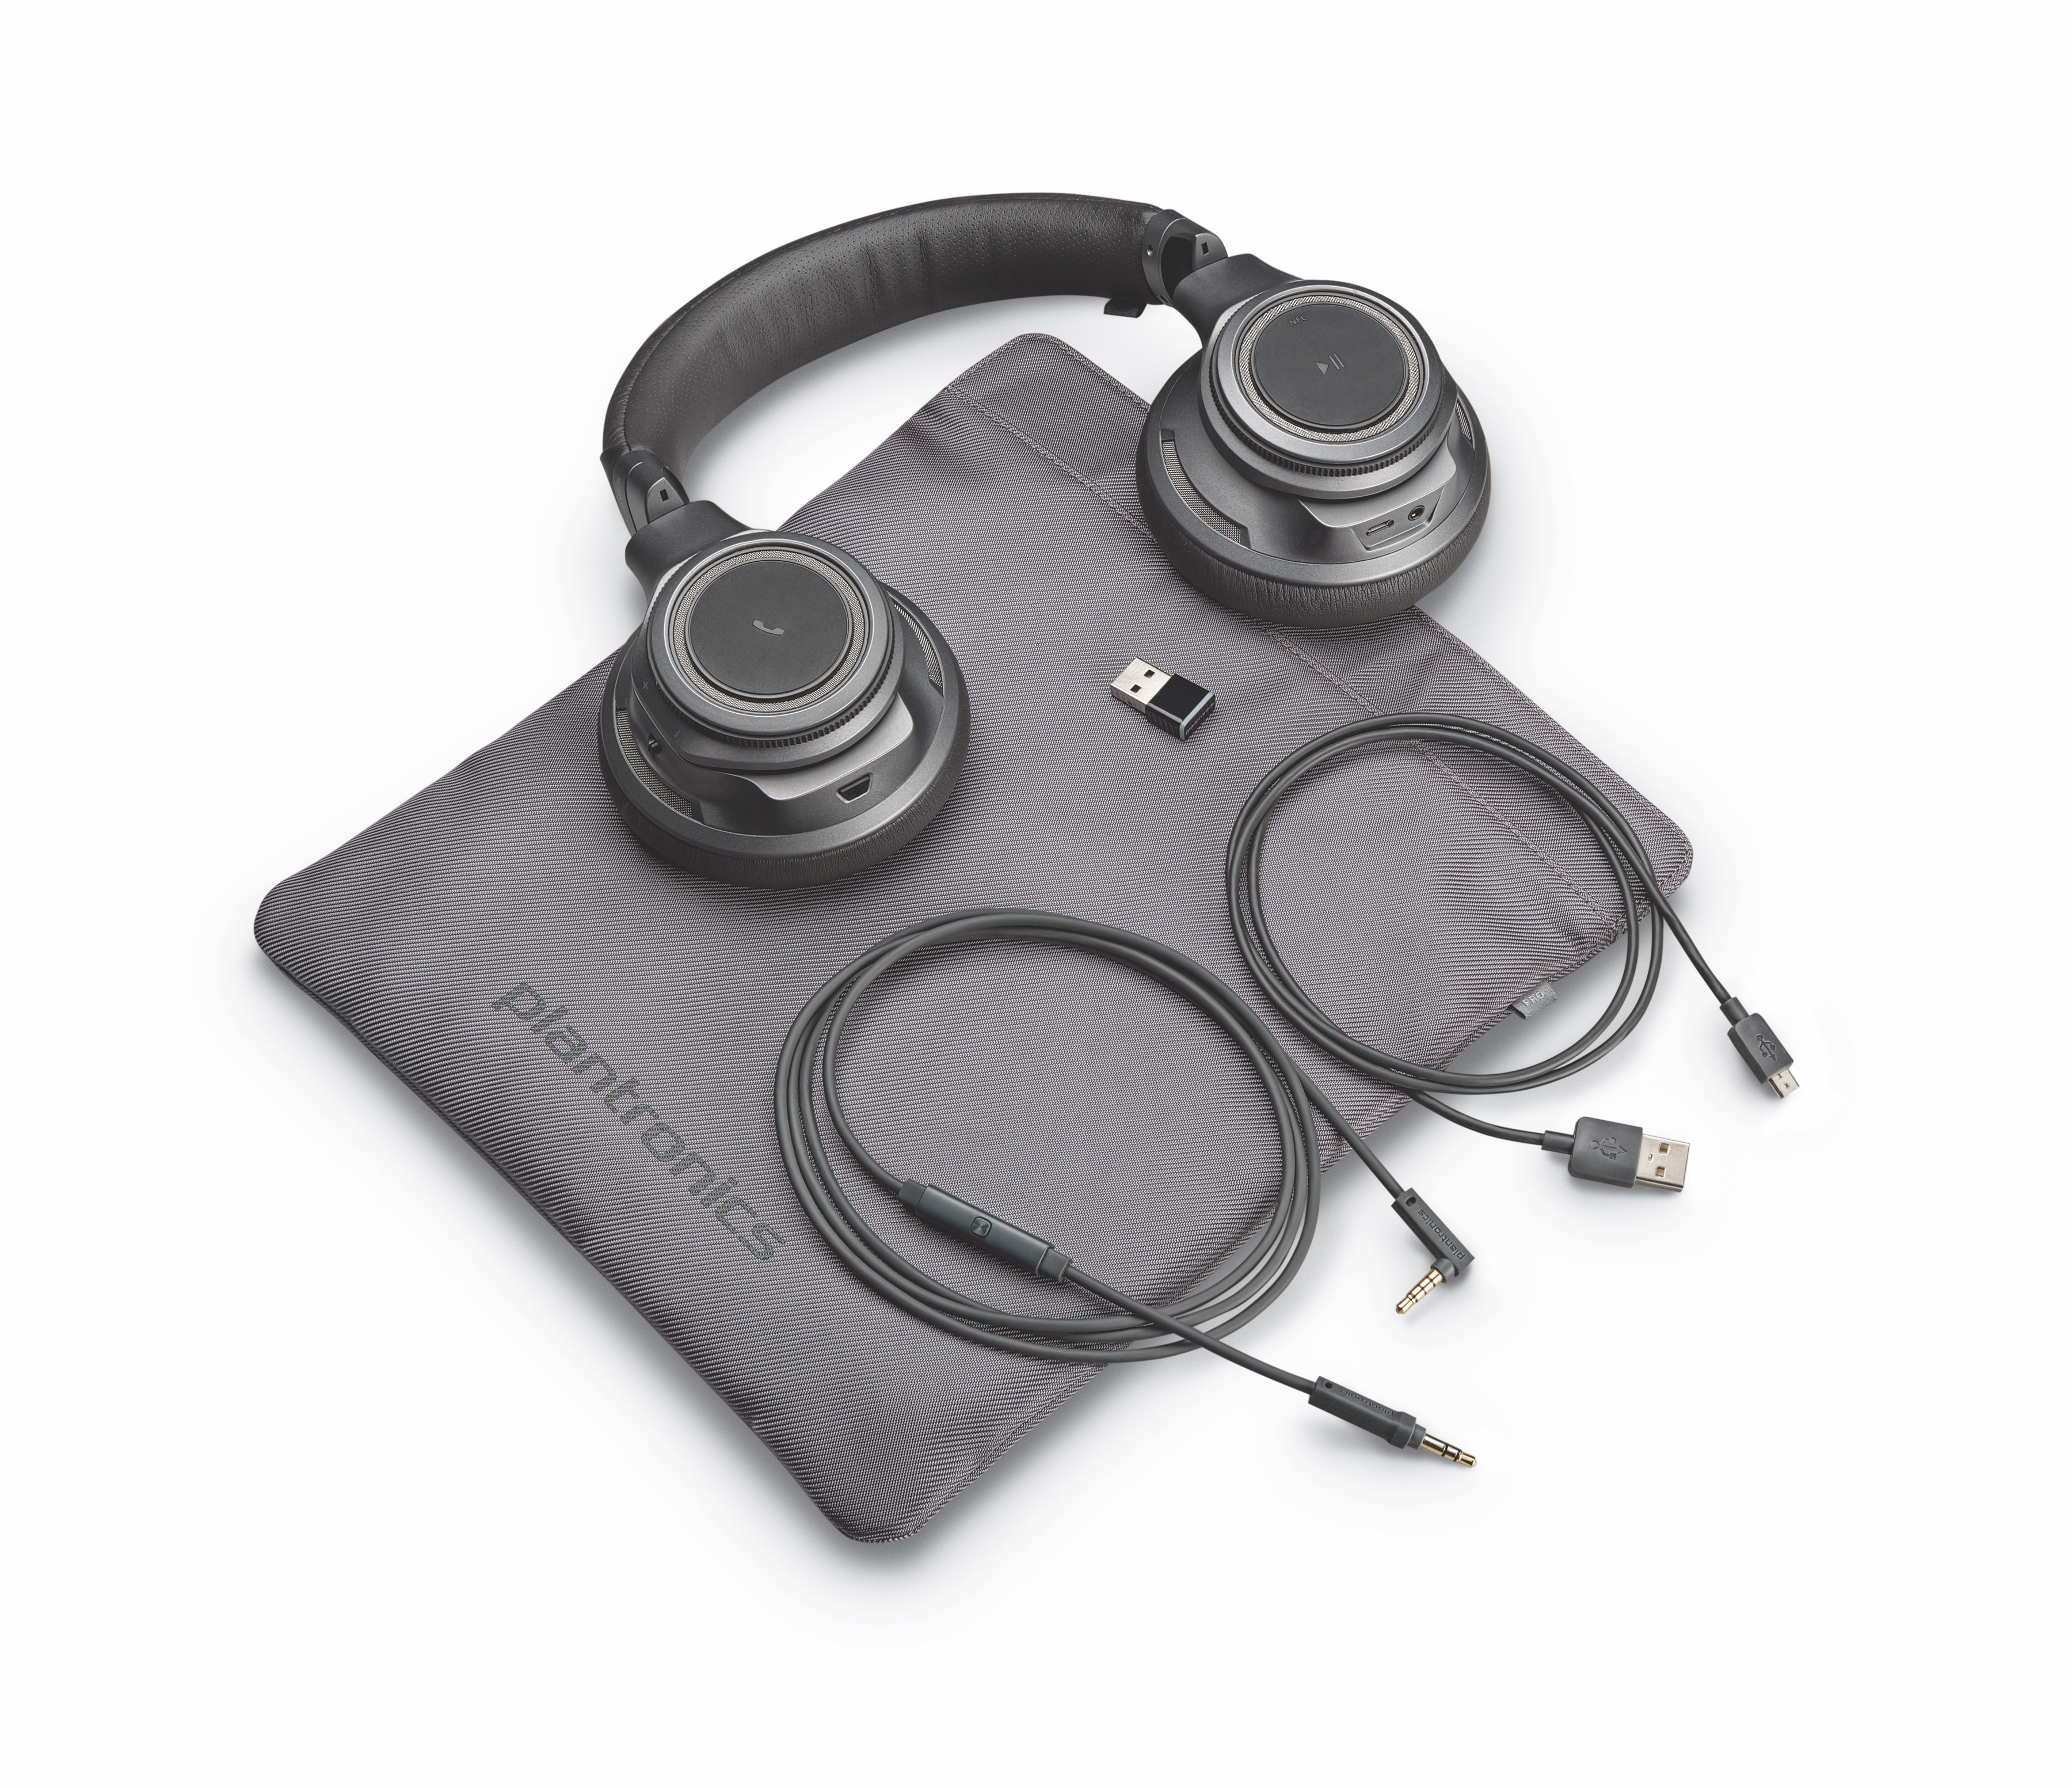 Plantronics BackBeat Pro+ - full kit